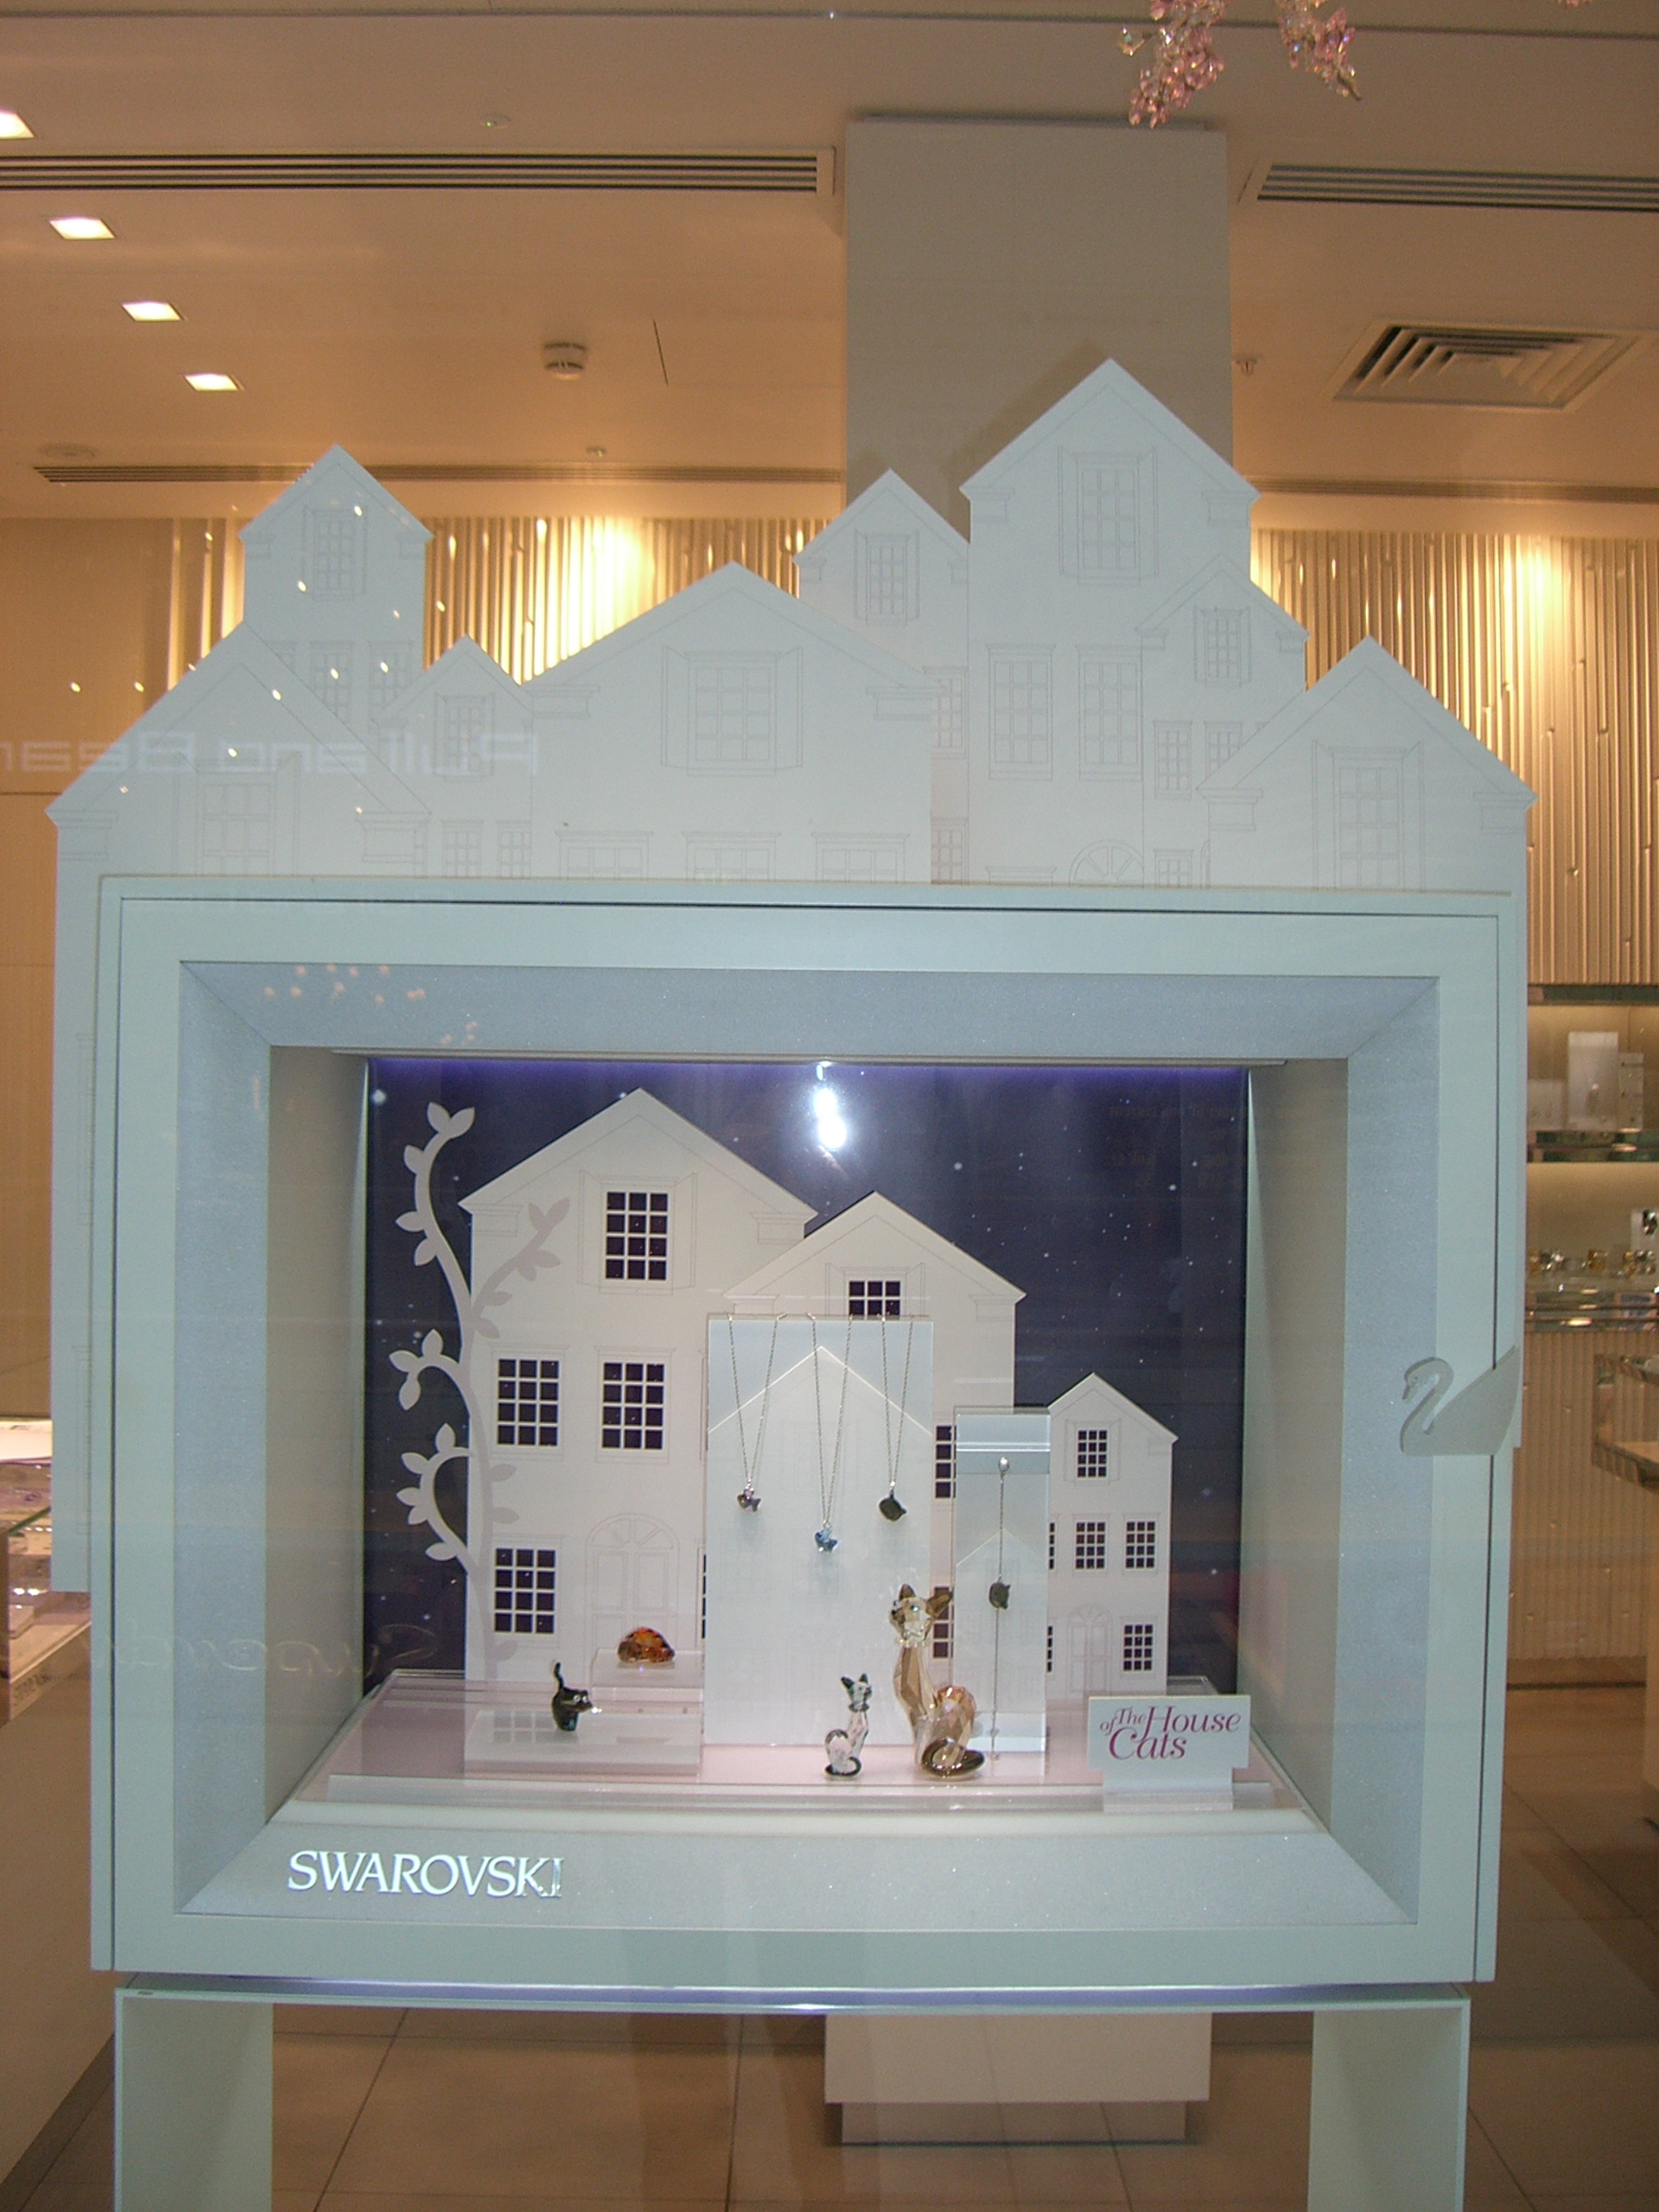 Swarovski jewelry display setting based on a house theme. Jewelry displayed in a box, with houses on top of it and also inside the box. Original ideas for jewelry display.